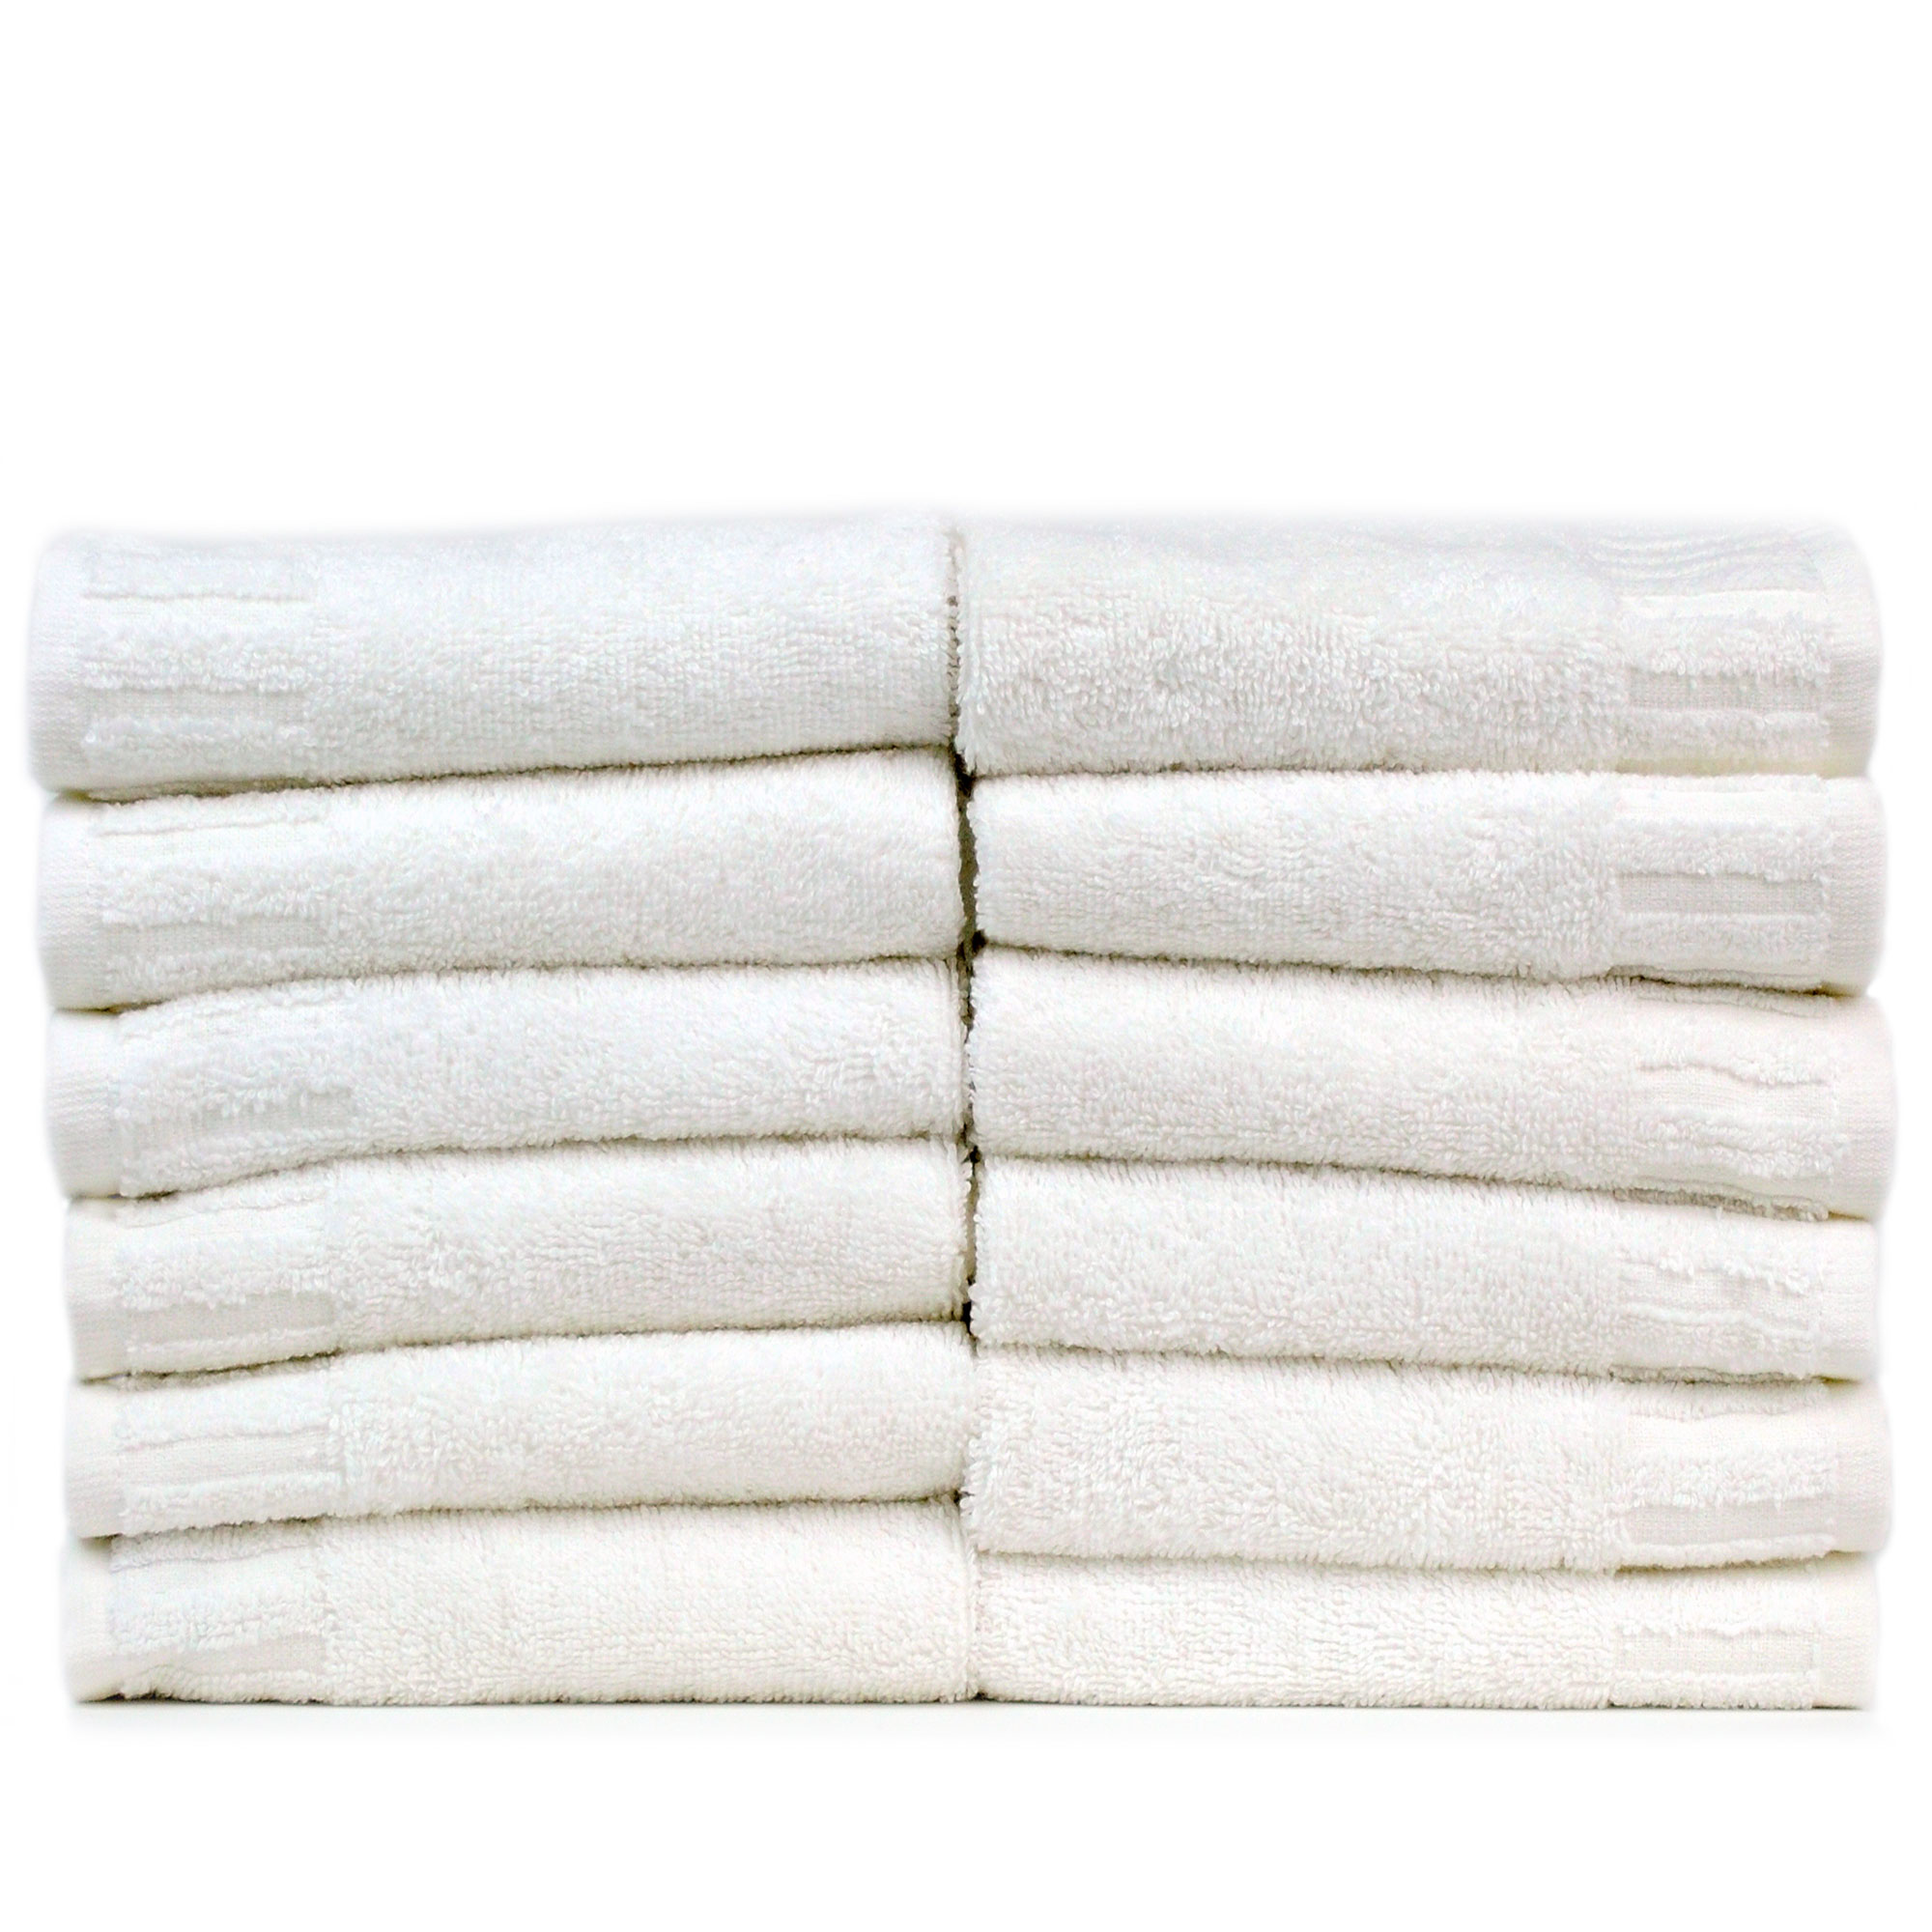 Bare Cotton Luxury Hotel & Spa Towel 100% Genuine Turkish Cotton Washcloths - White - Piano -  Set of 6